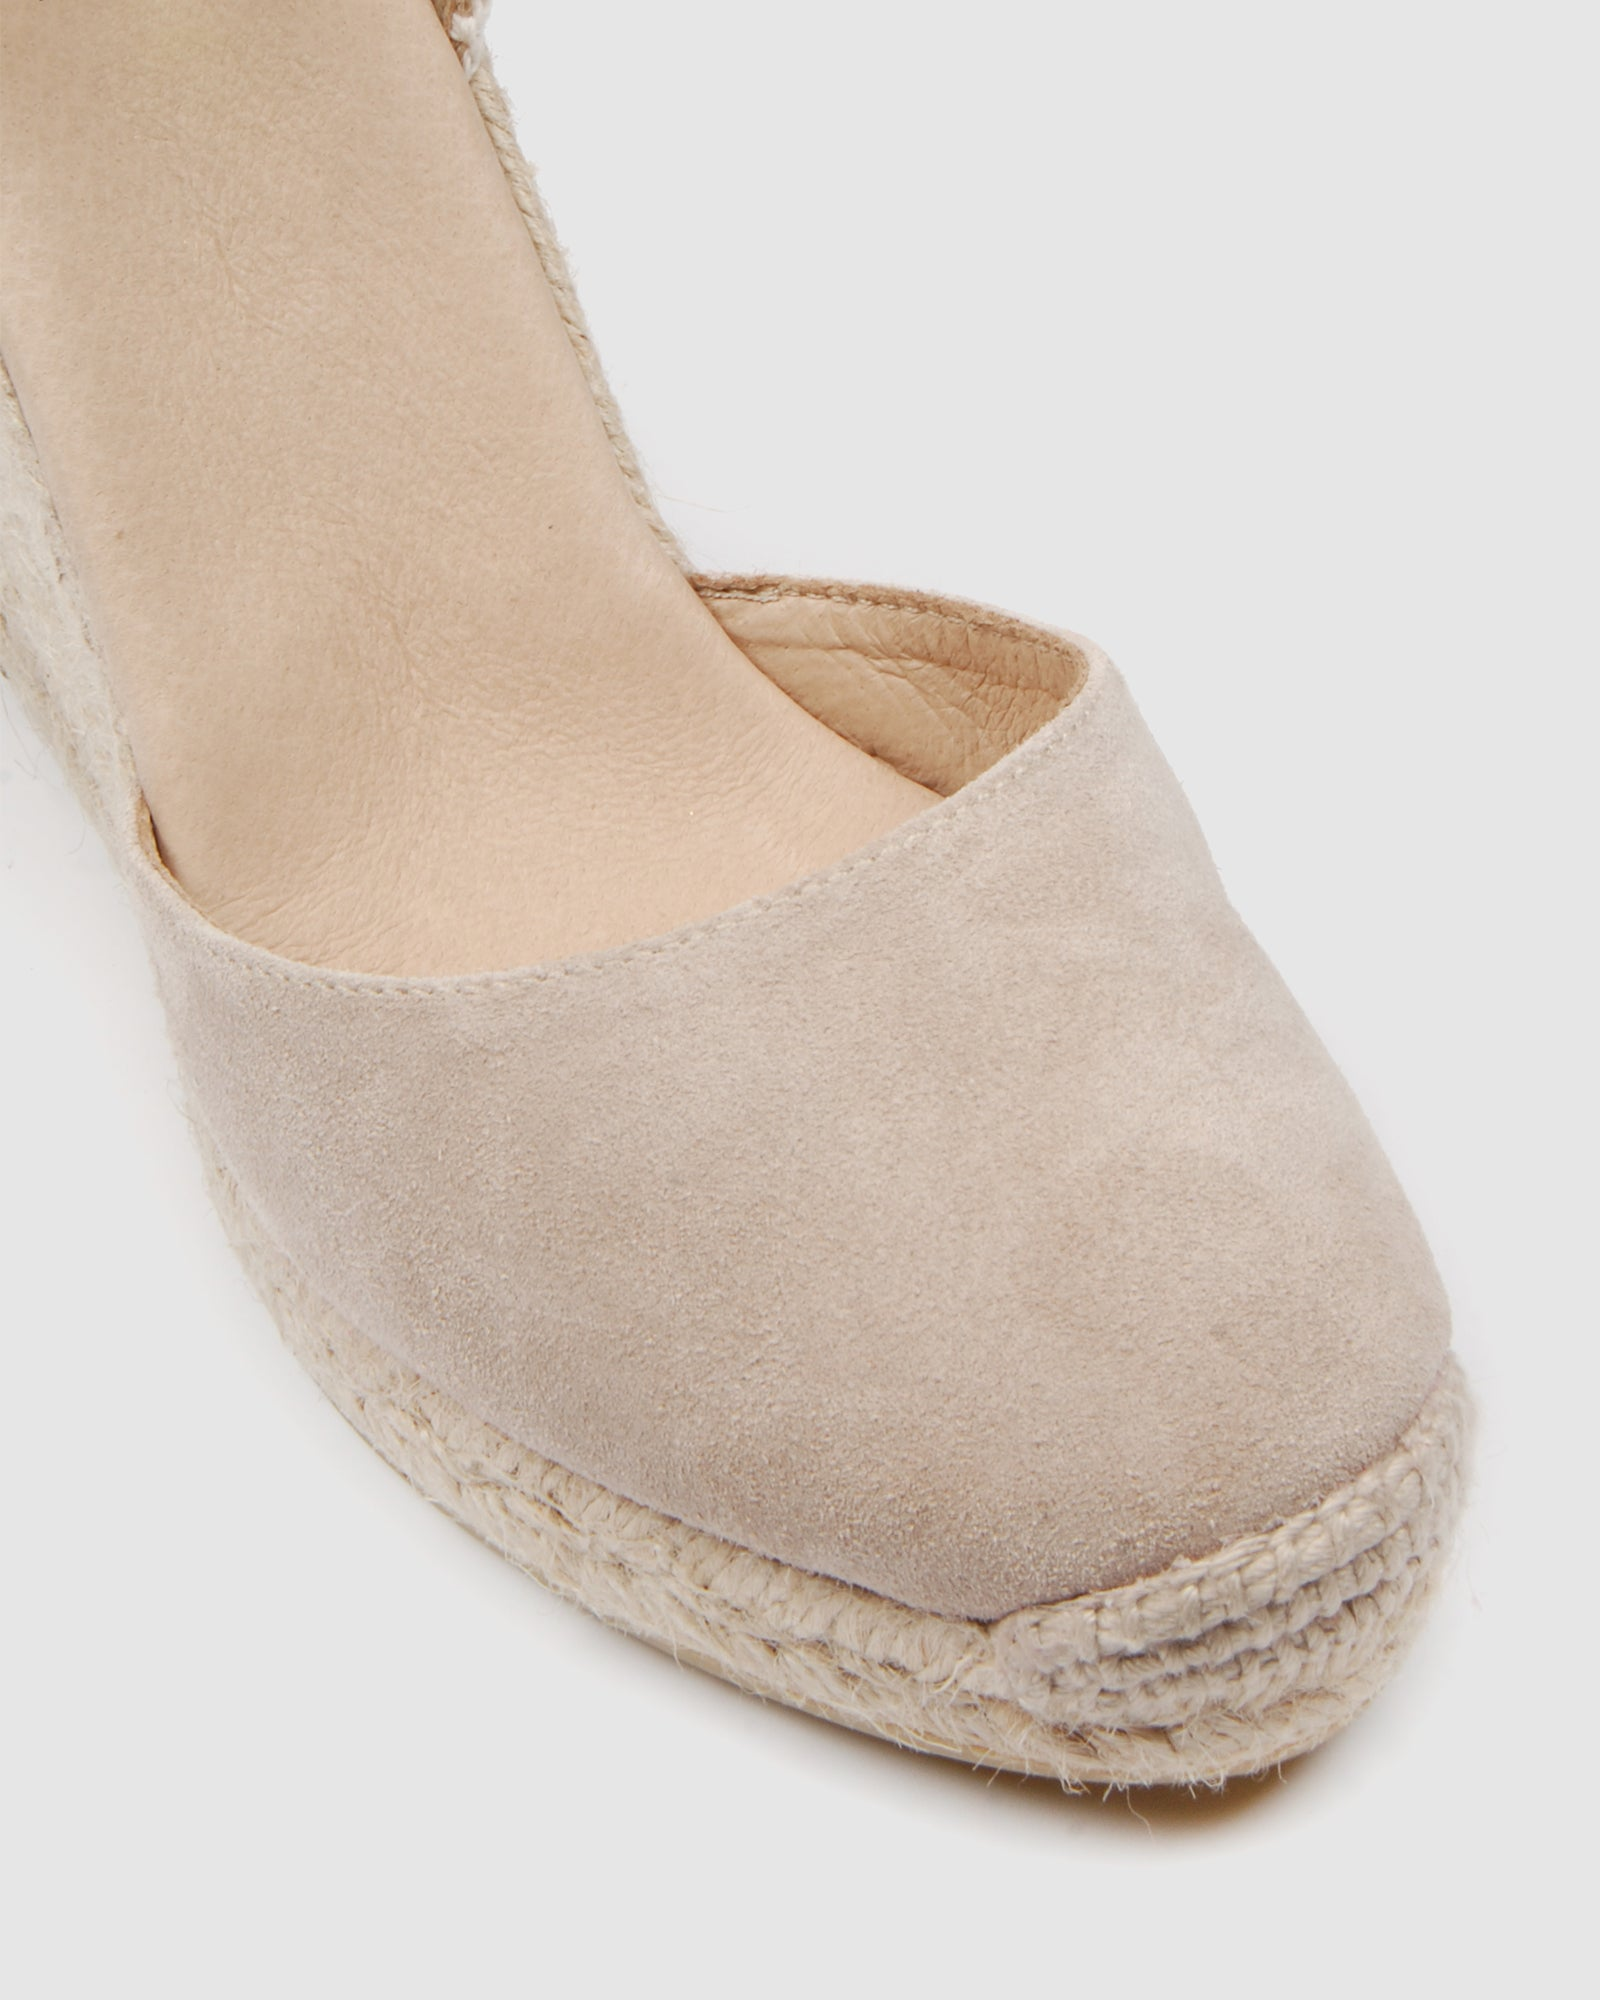 GEMMA HIGH HEEL WEDGE ESPADRILLES LIGHT TAUPE SUEDE